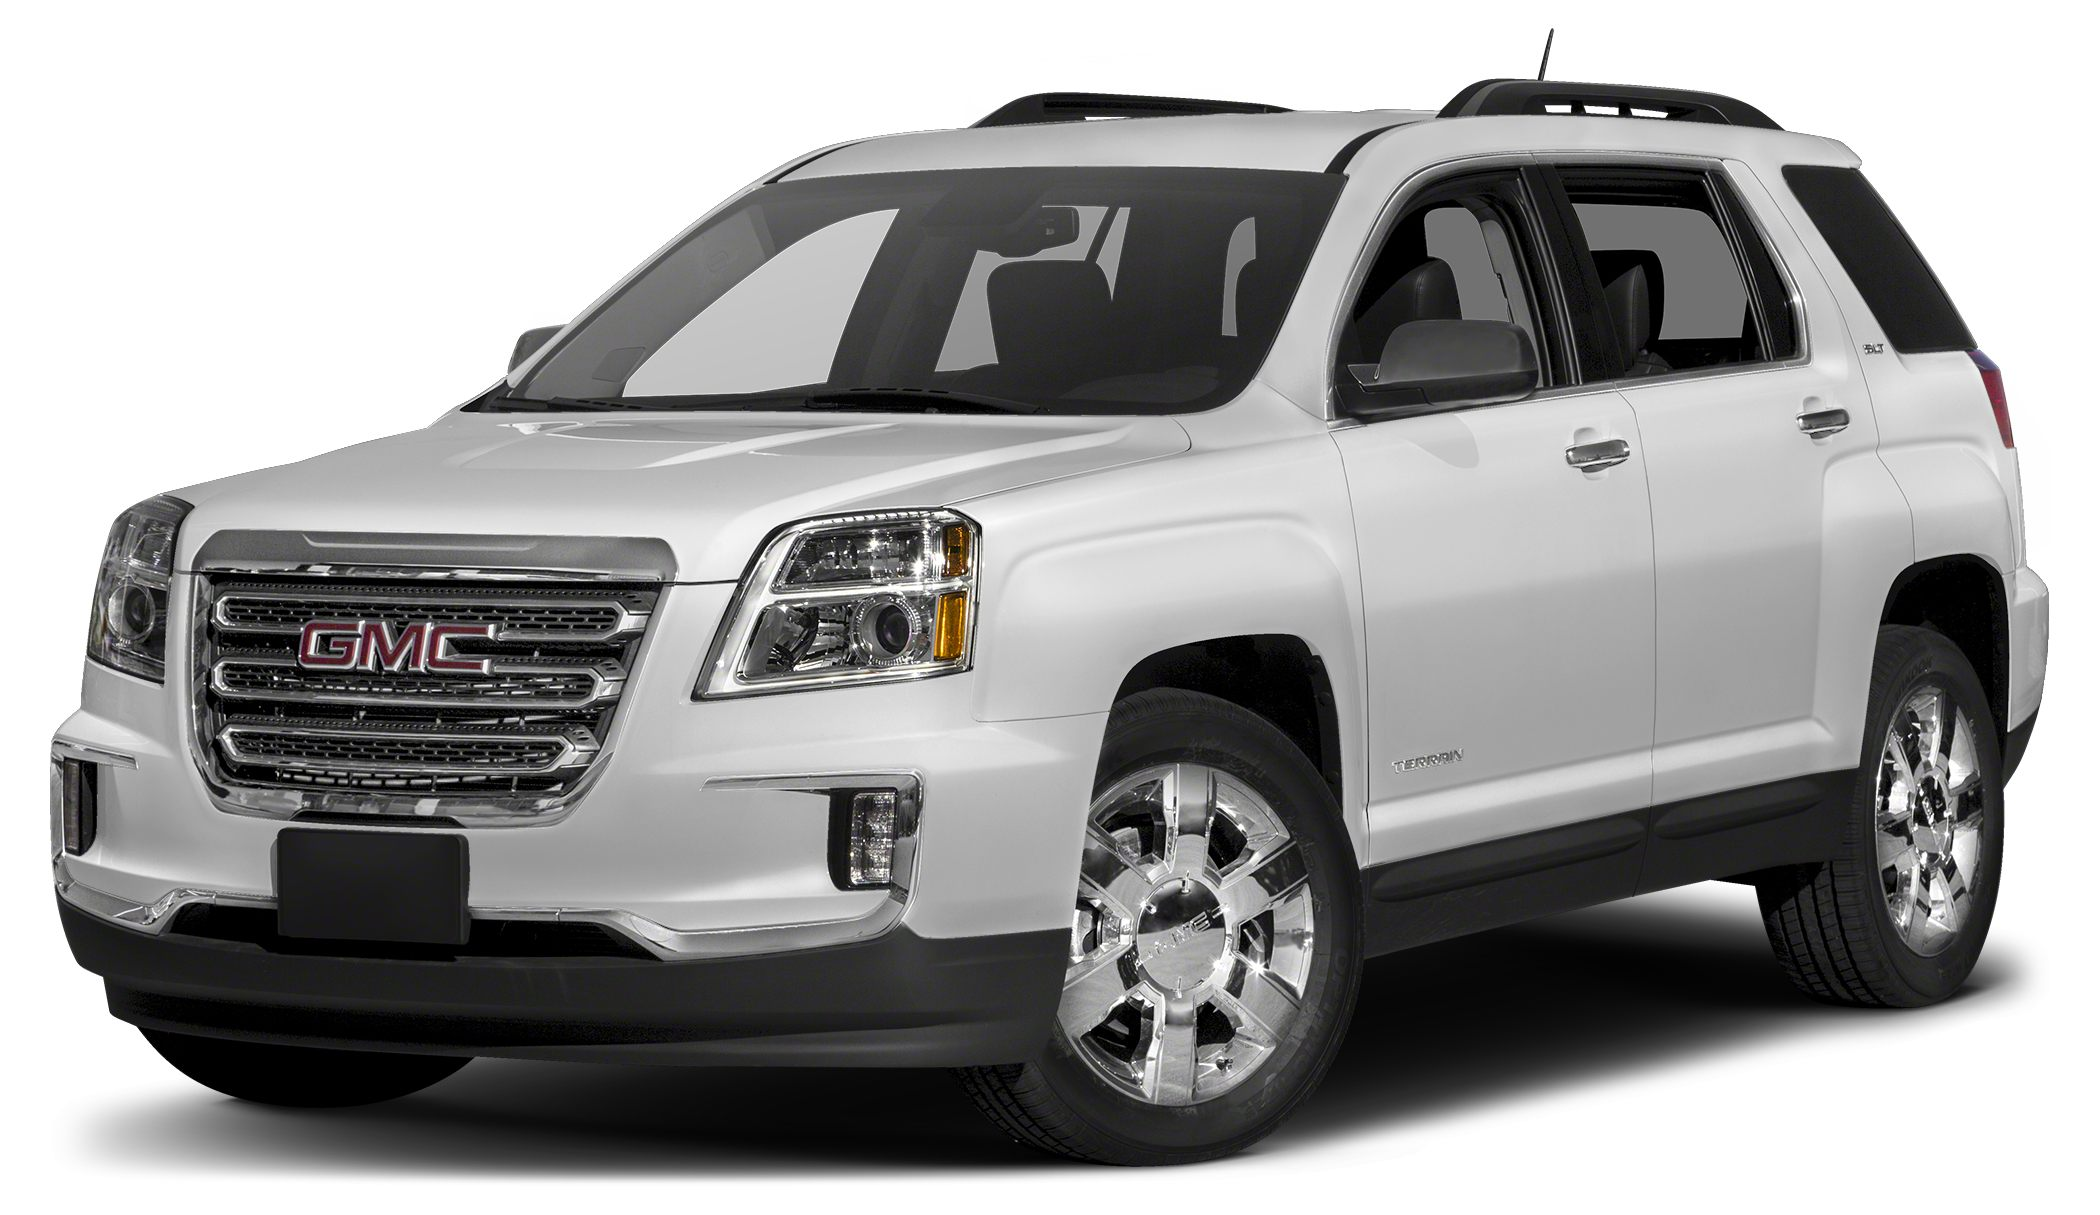 2016 GMC Terrain SLT Navigation Heated Leather Seats Chrome Wheels Remote Engine Start Back-Up